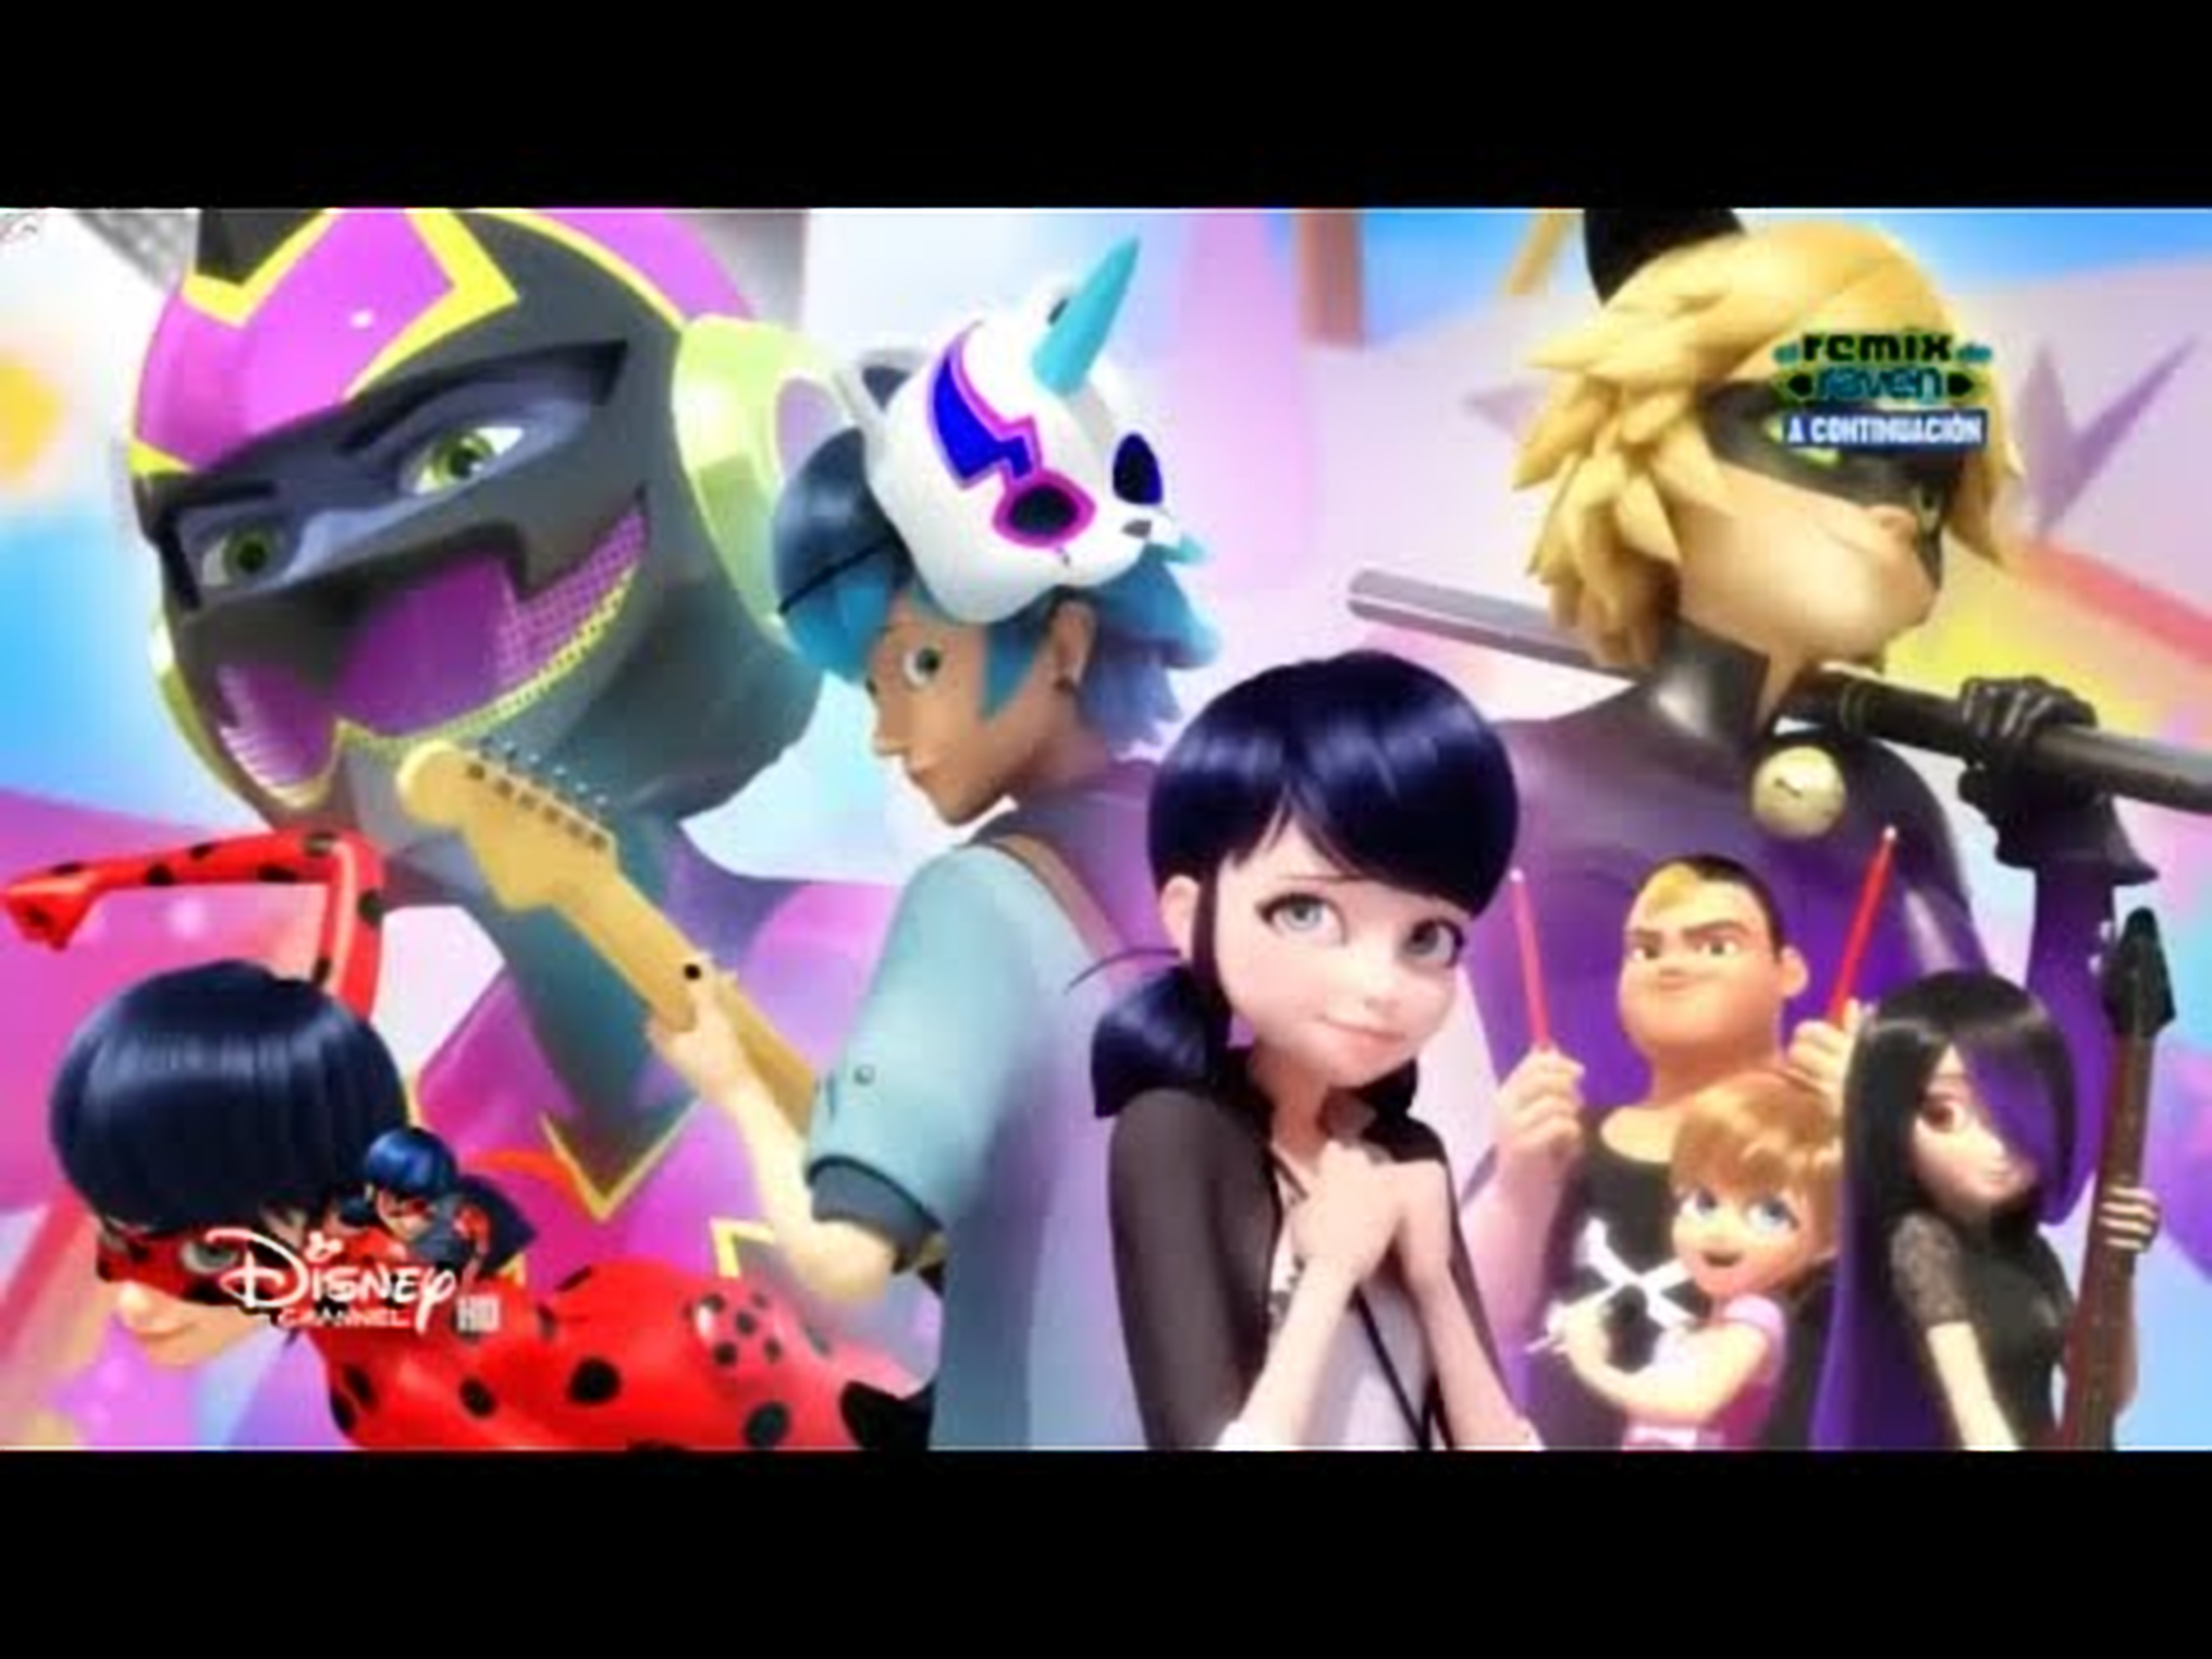 Miraculous Tales Of Ladybug Cat Noir Silencer Tv Episode 2019 Imdb Miraculous follows the heroic adventures of marinette and adrien as they transform into ladybug and cat noir and set out to capture akumas, creatures responsible for turning the people of paris into villains. cat noir silencer tv episode 2019